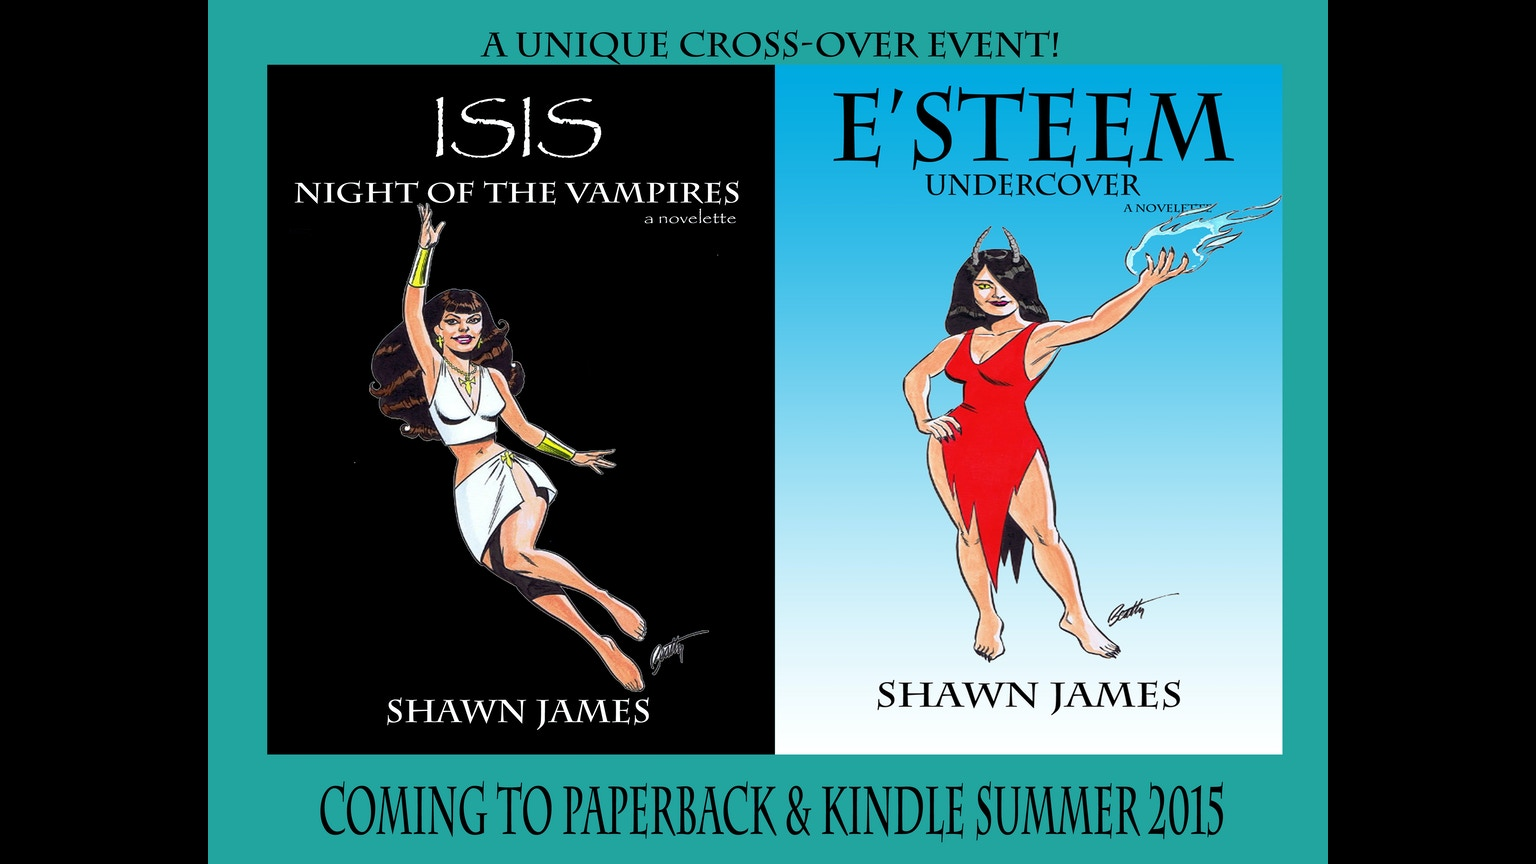 Book Cover Artist For Hire ~ Isis e steem series crossover event cover art project by